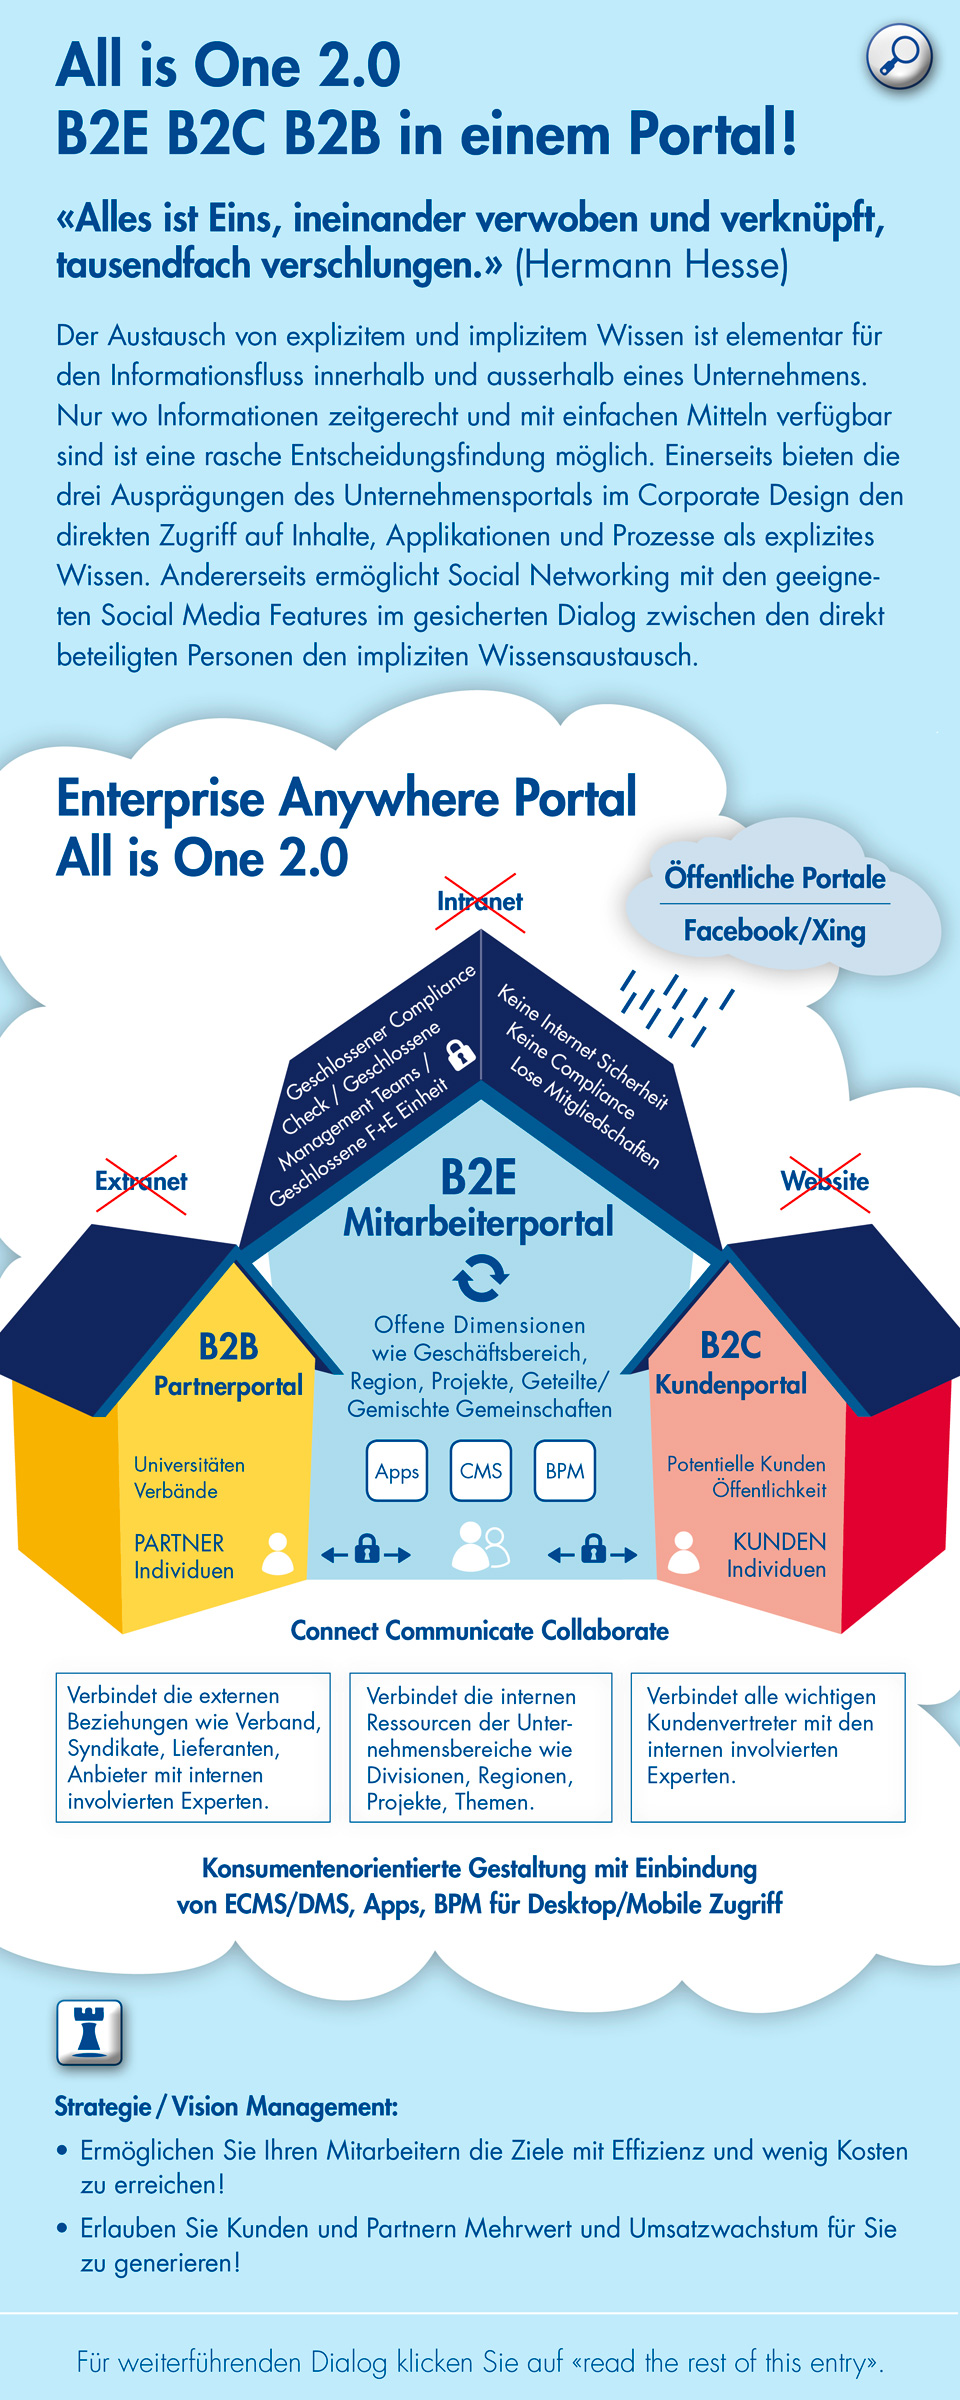 All is One 2.0 - B2E Intranet, B2C Webseite und B2B Extranet in einem Portal! Ideal für Social Business, Social Networking, Social Media, Enterprise Portal, Kommunikation, Cloud Computing